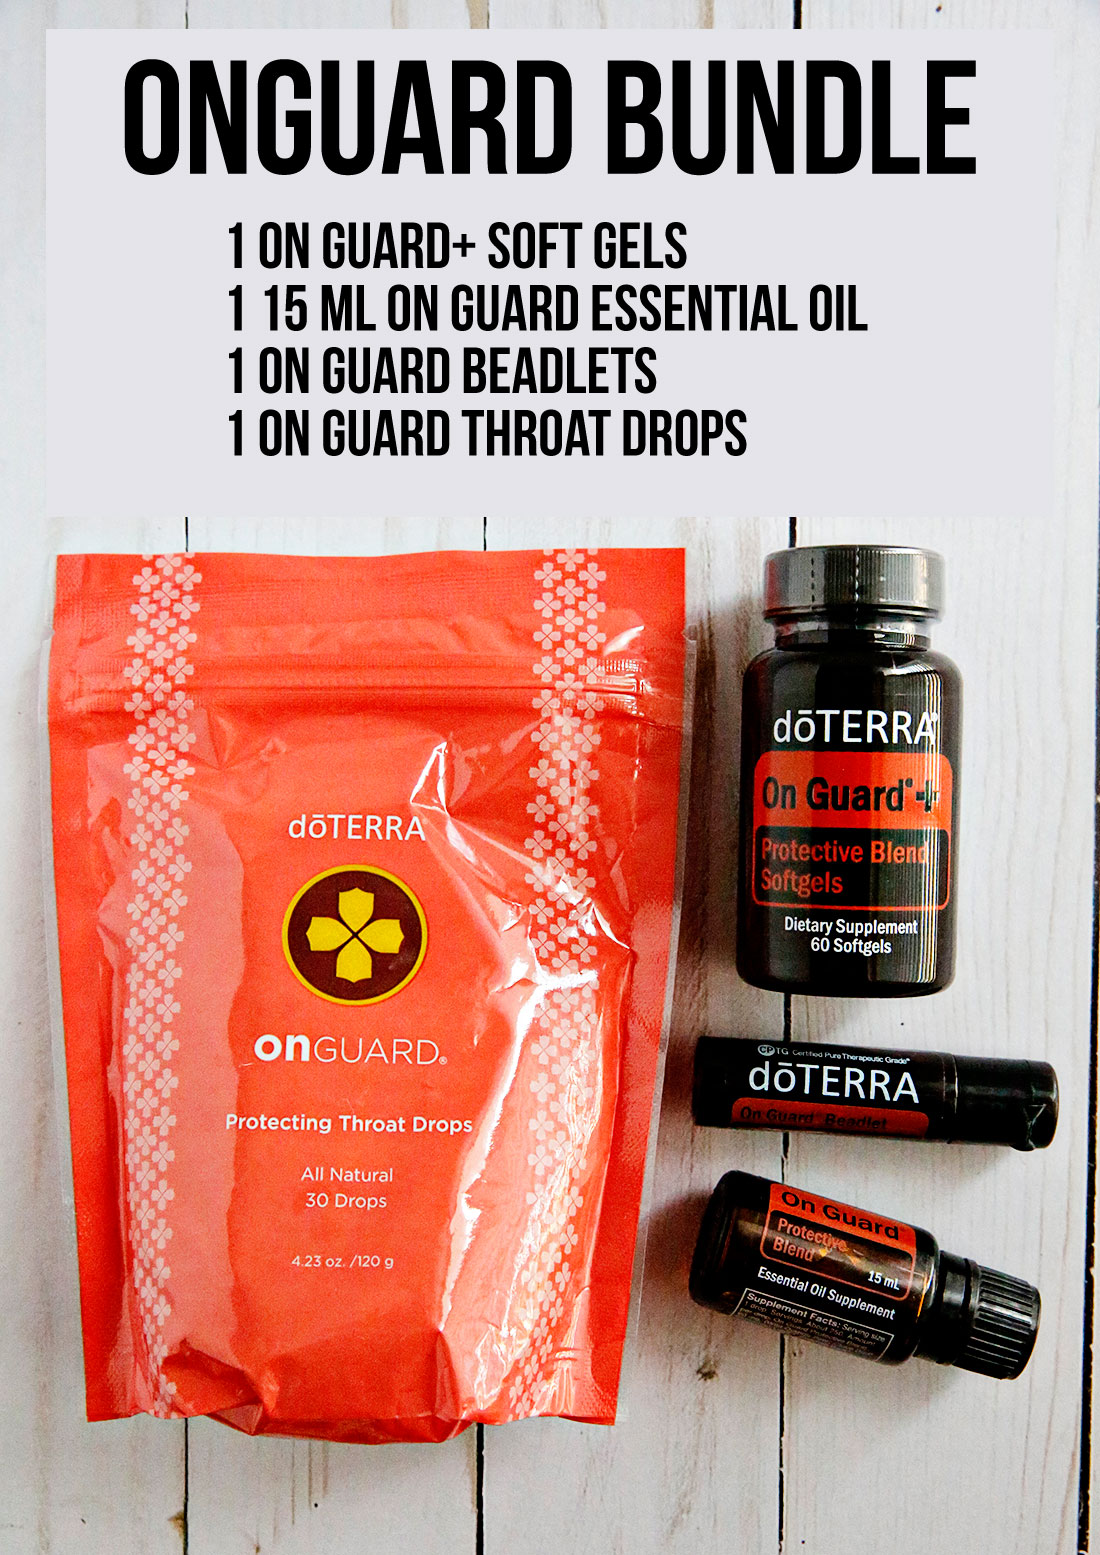 OnGuard Bundle for 30days friends- get this awesome bundle for a deal for the new year!